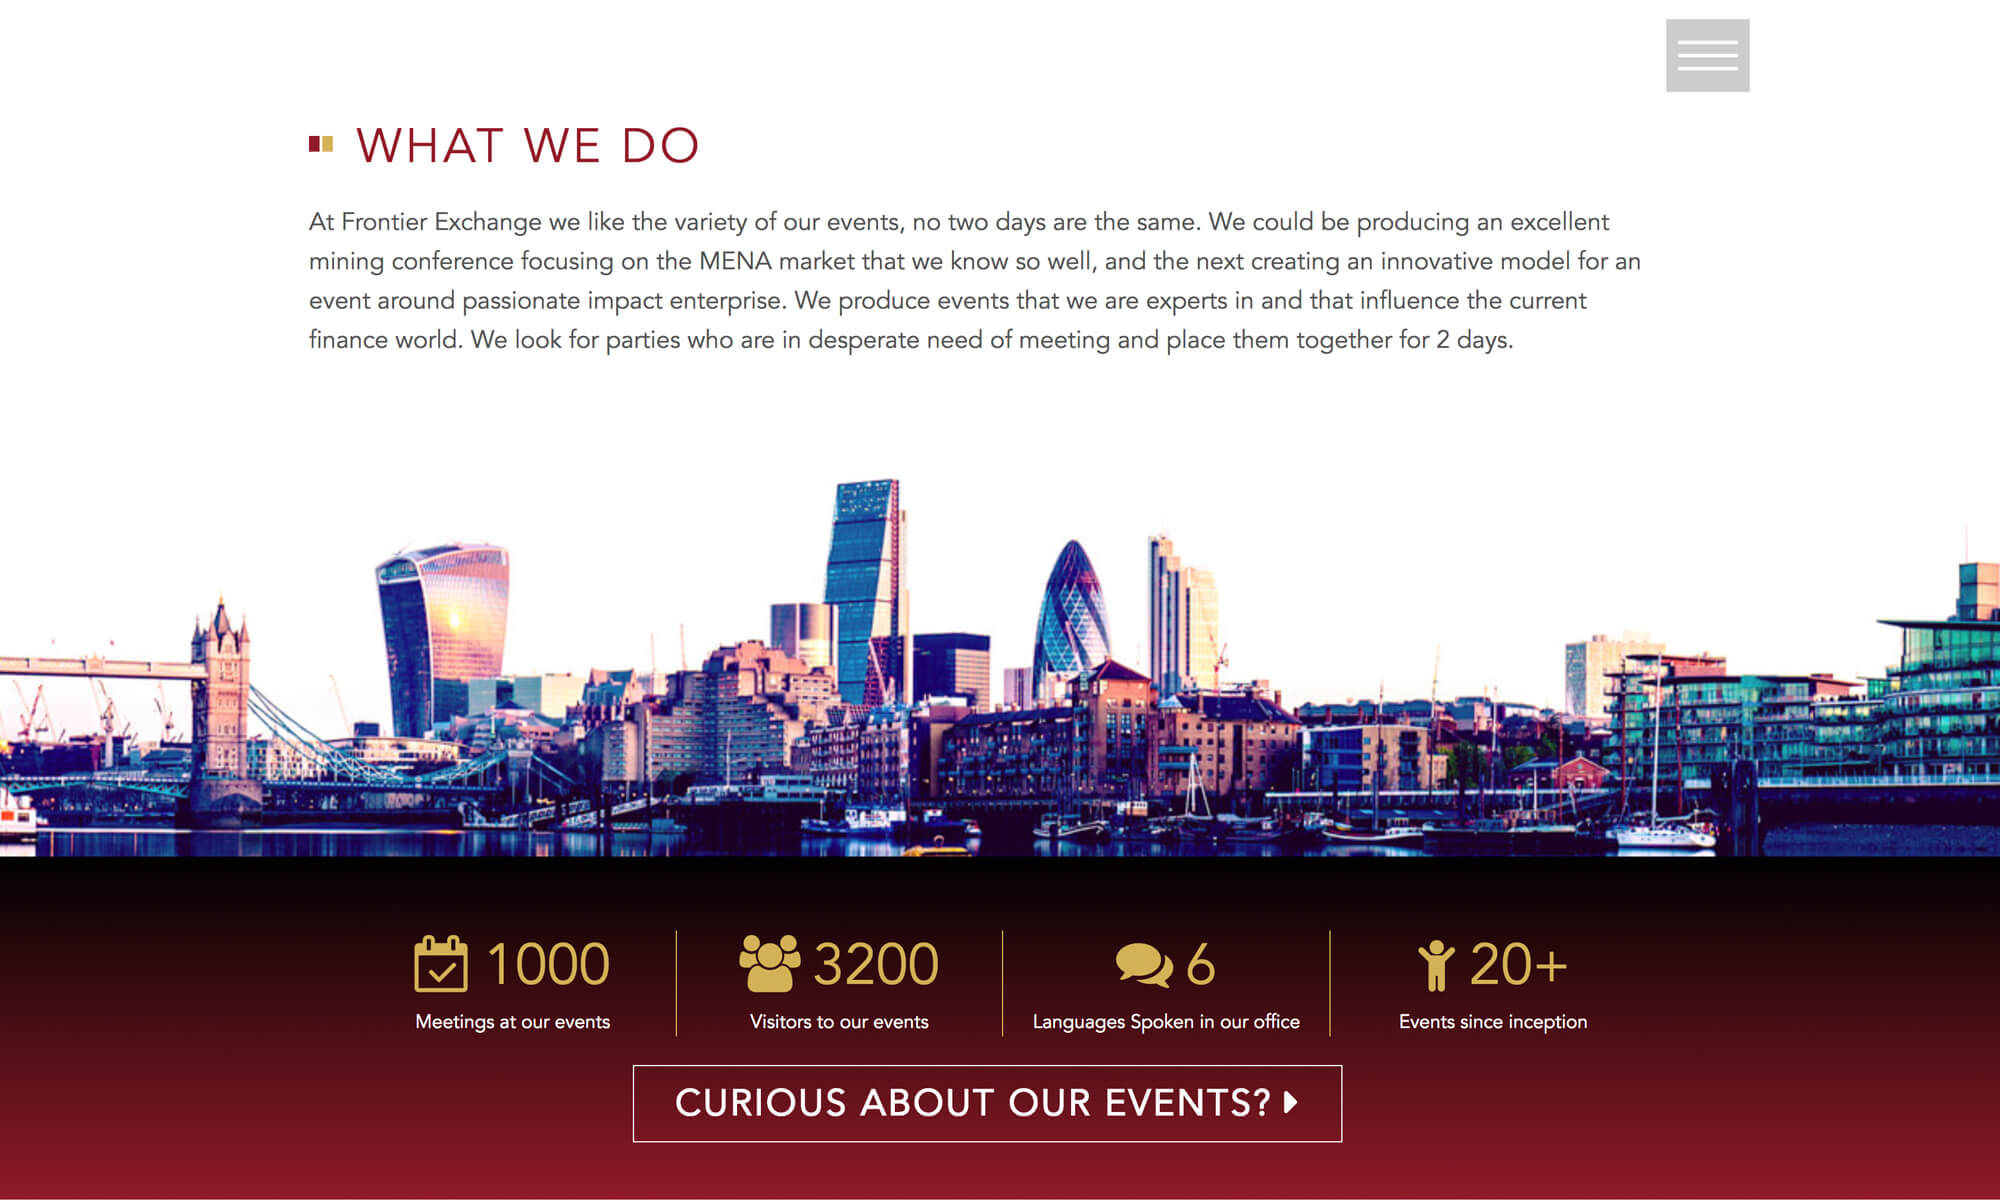 website designs frontier exchange events Boca